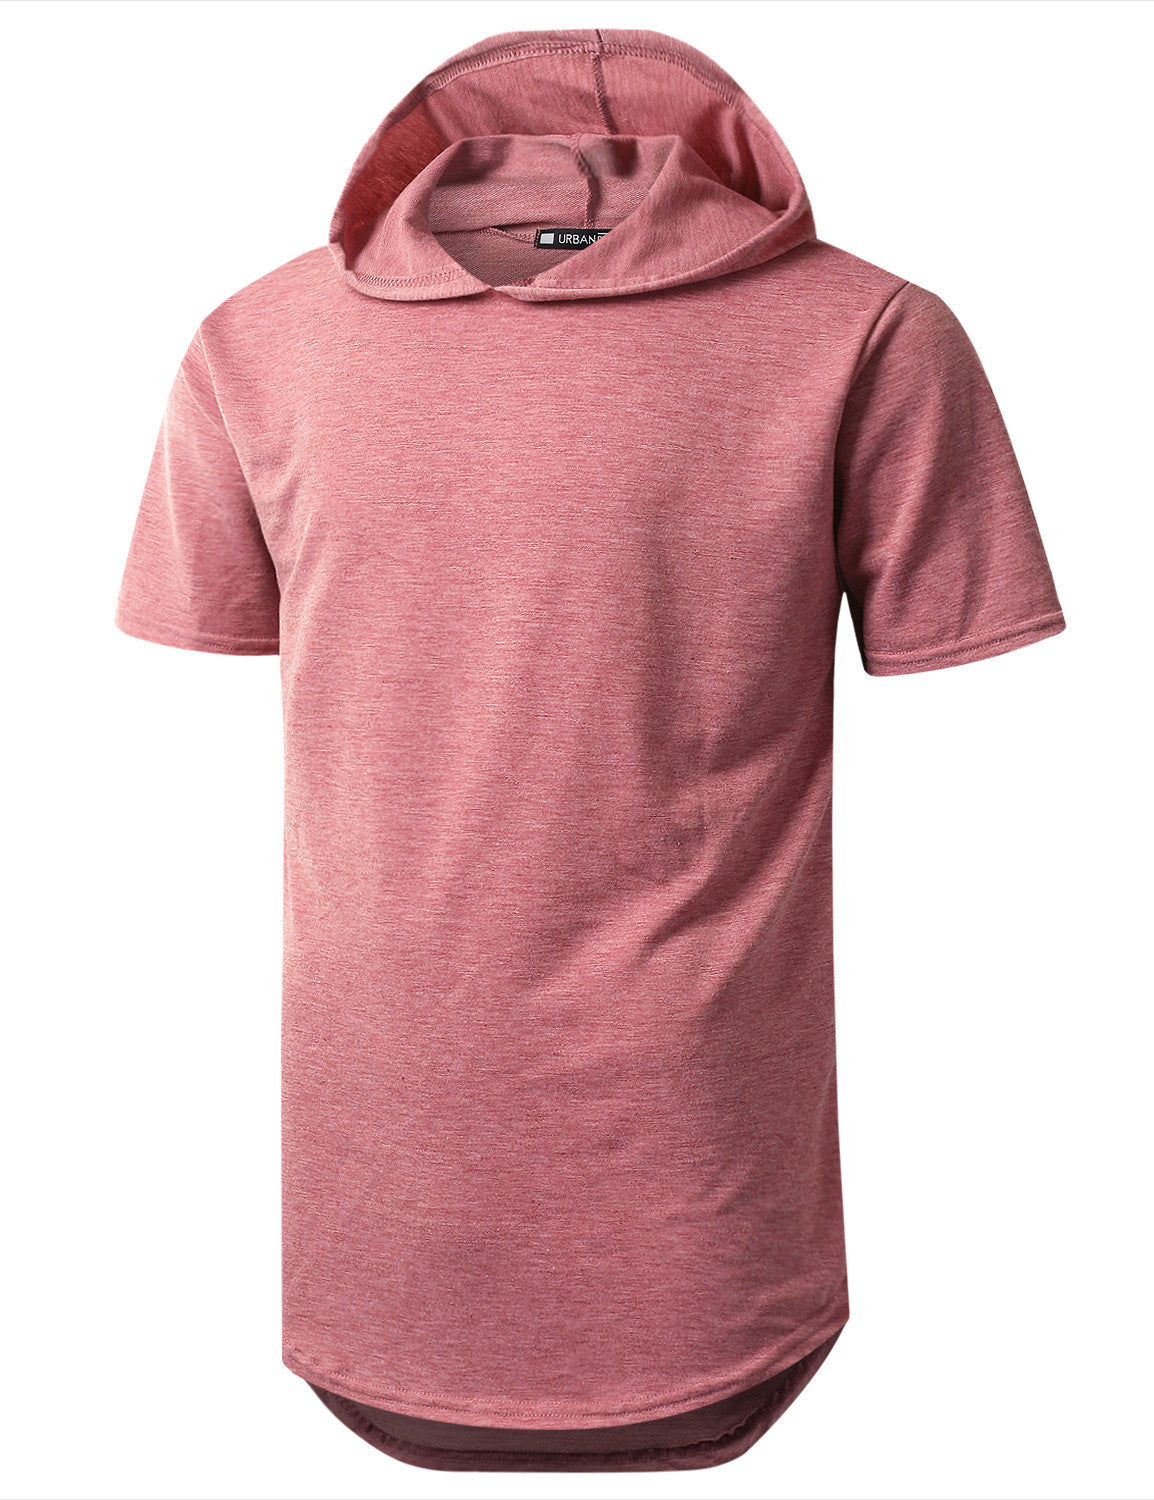 BURGUNDY Heavy French Terry Hoodie T-shirt - URBANCREWS